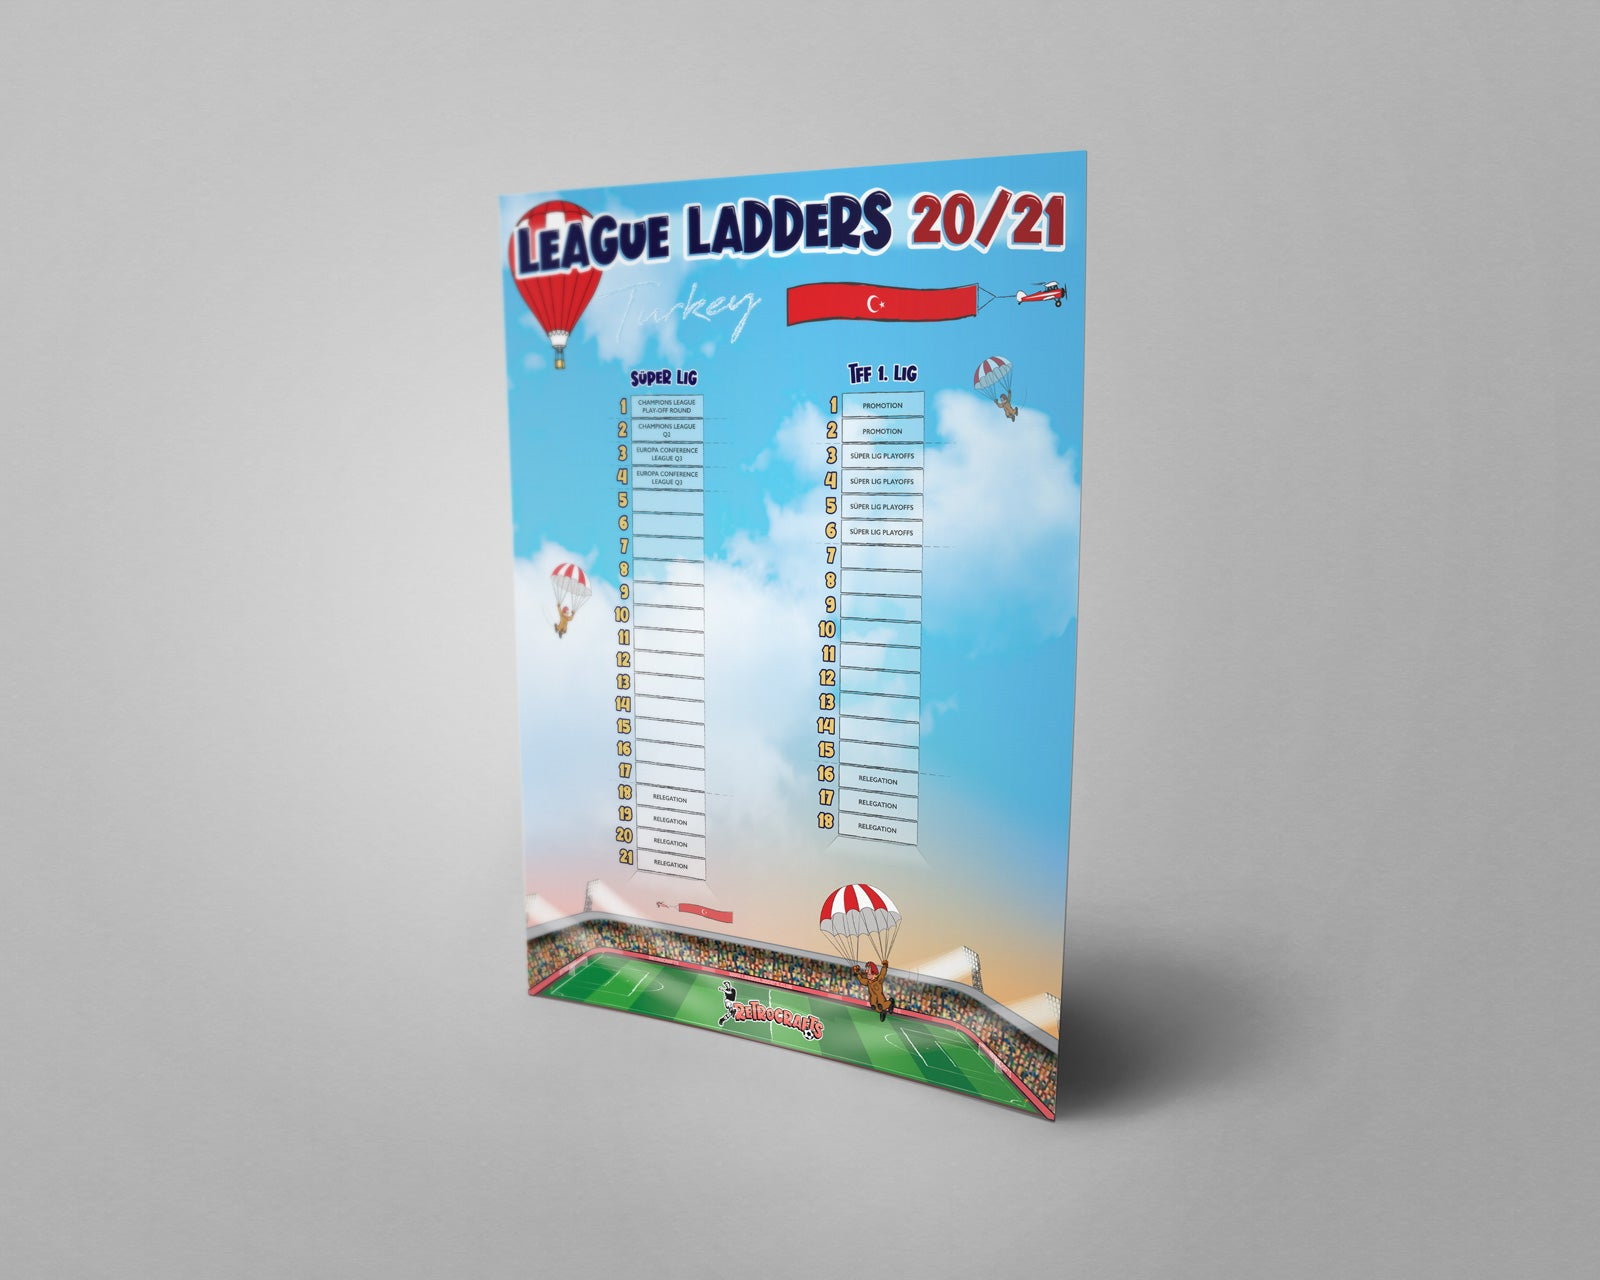 Turkey Football League Tiers 1 & 2 2020/21 Season League Ladders